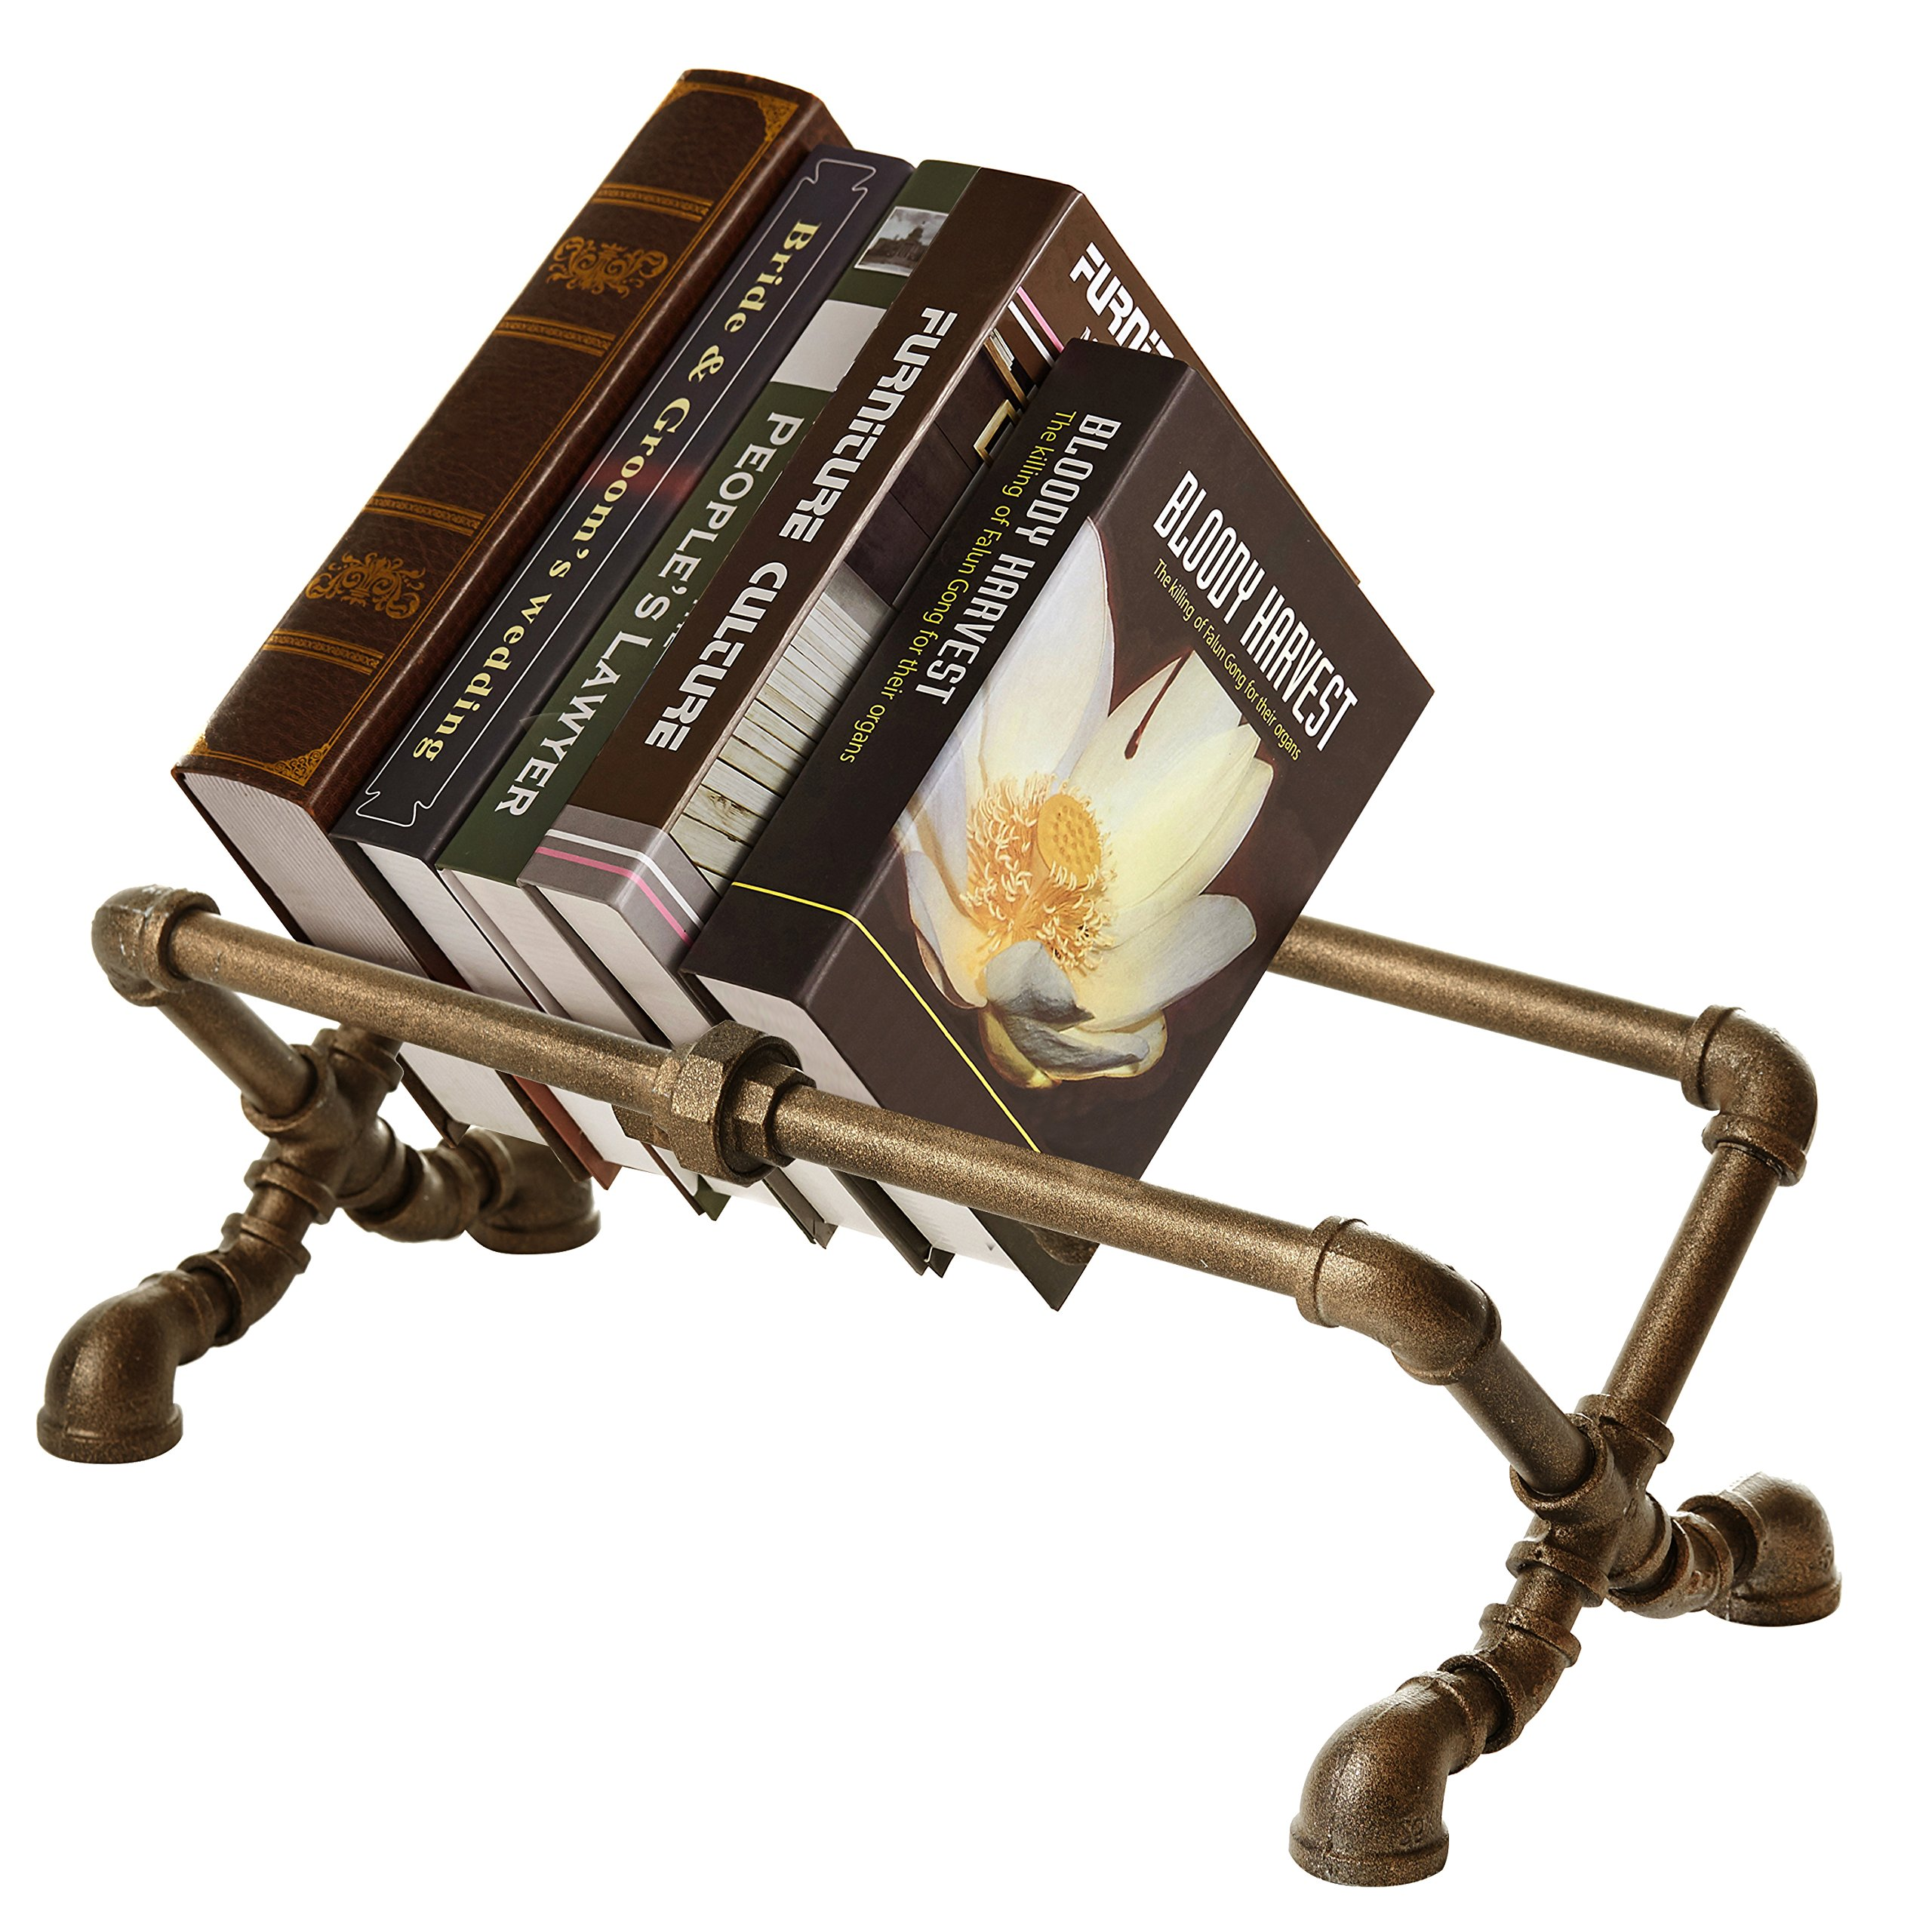 MyGift Decorative Industrial Pipe Design Cast Iron Tabletop Book Rack by MyGift